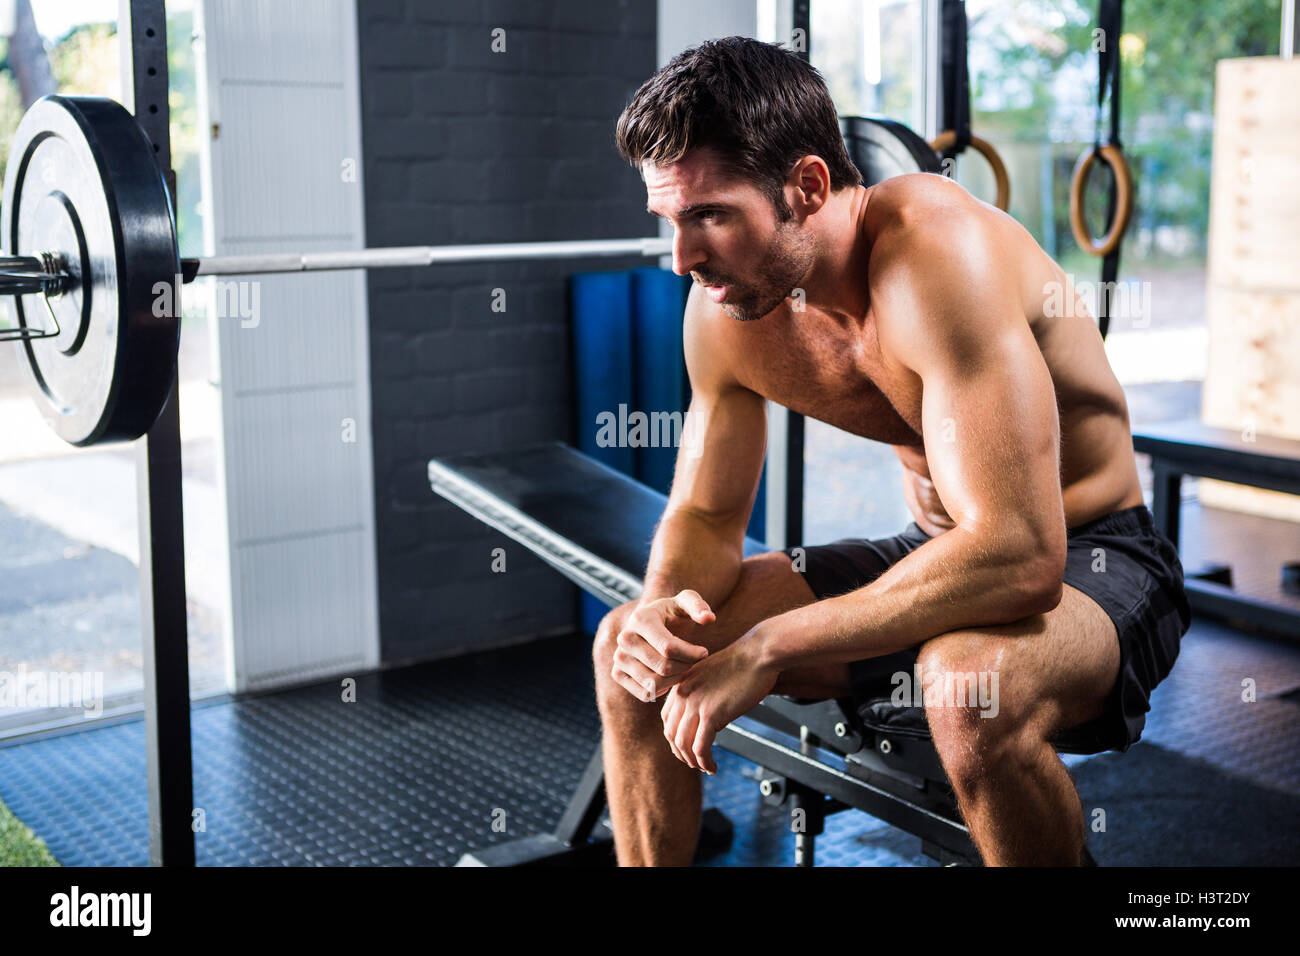 Man sitting on exercise equipment in gym - Stock Image